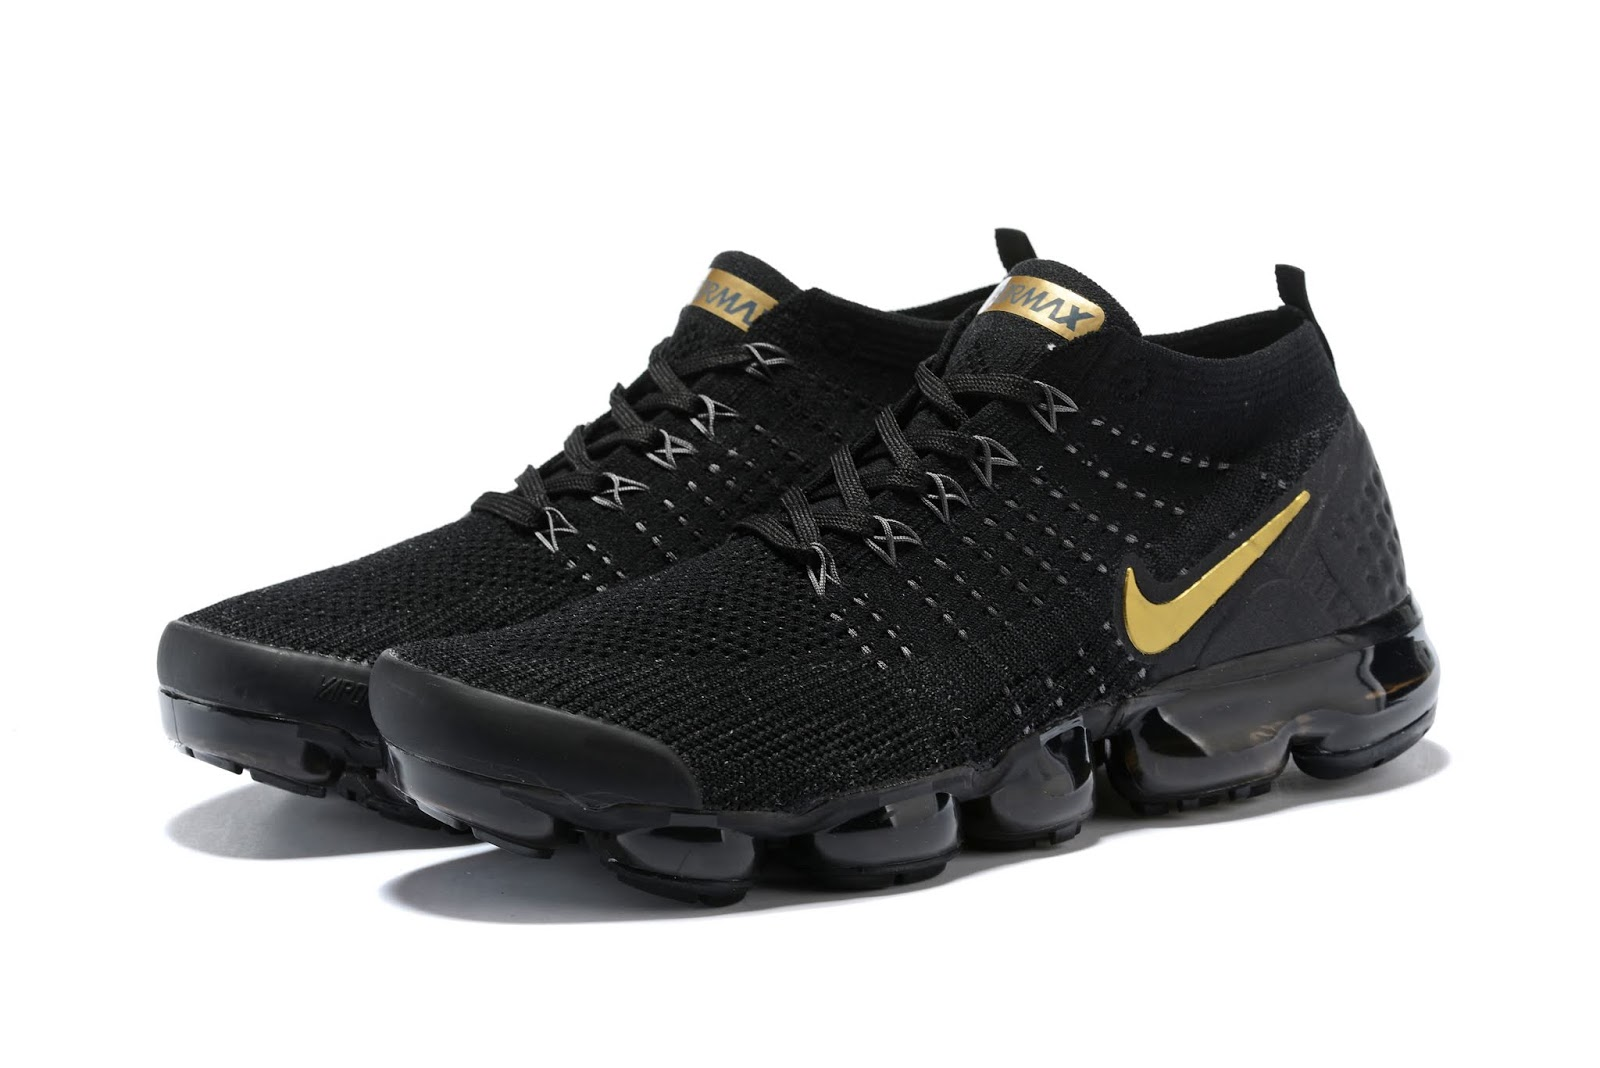 9c62bc03d0 nike air vapormax flyknit 2.0 black hot punch & cactus